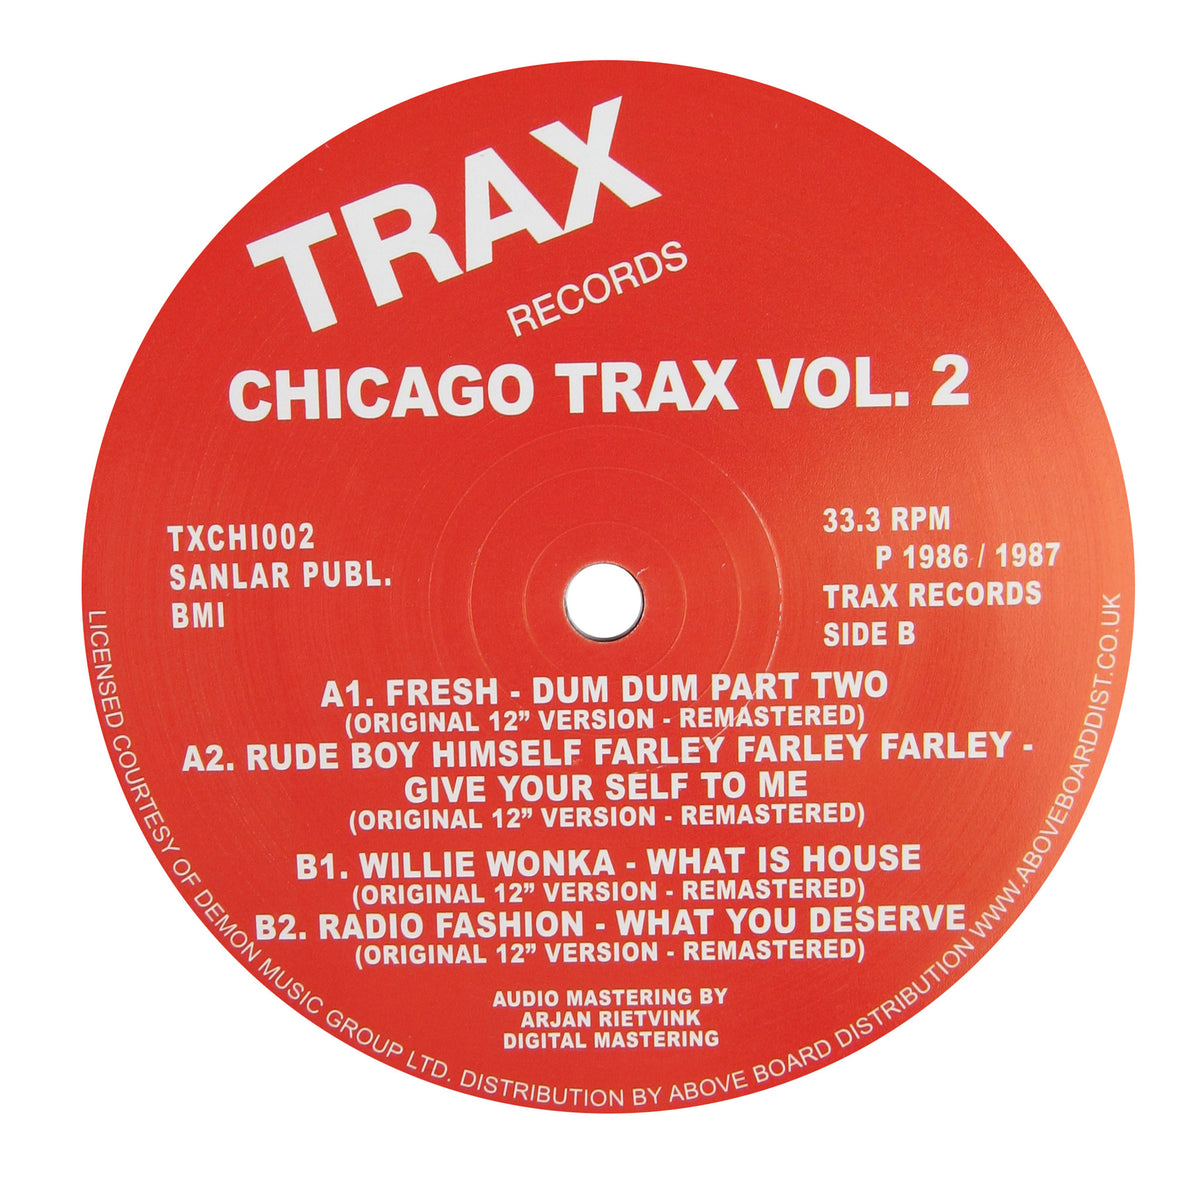 Trax: Chicago Trax Vol.2 Vinyl 12""